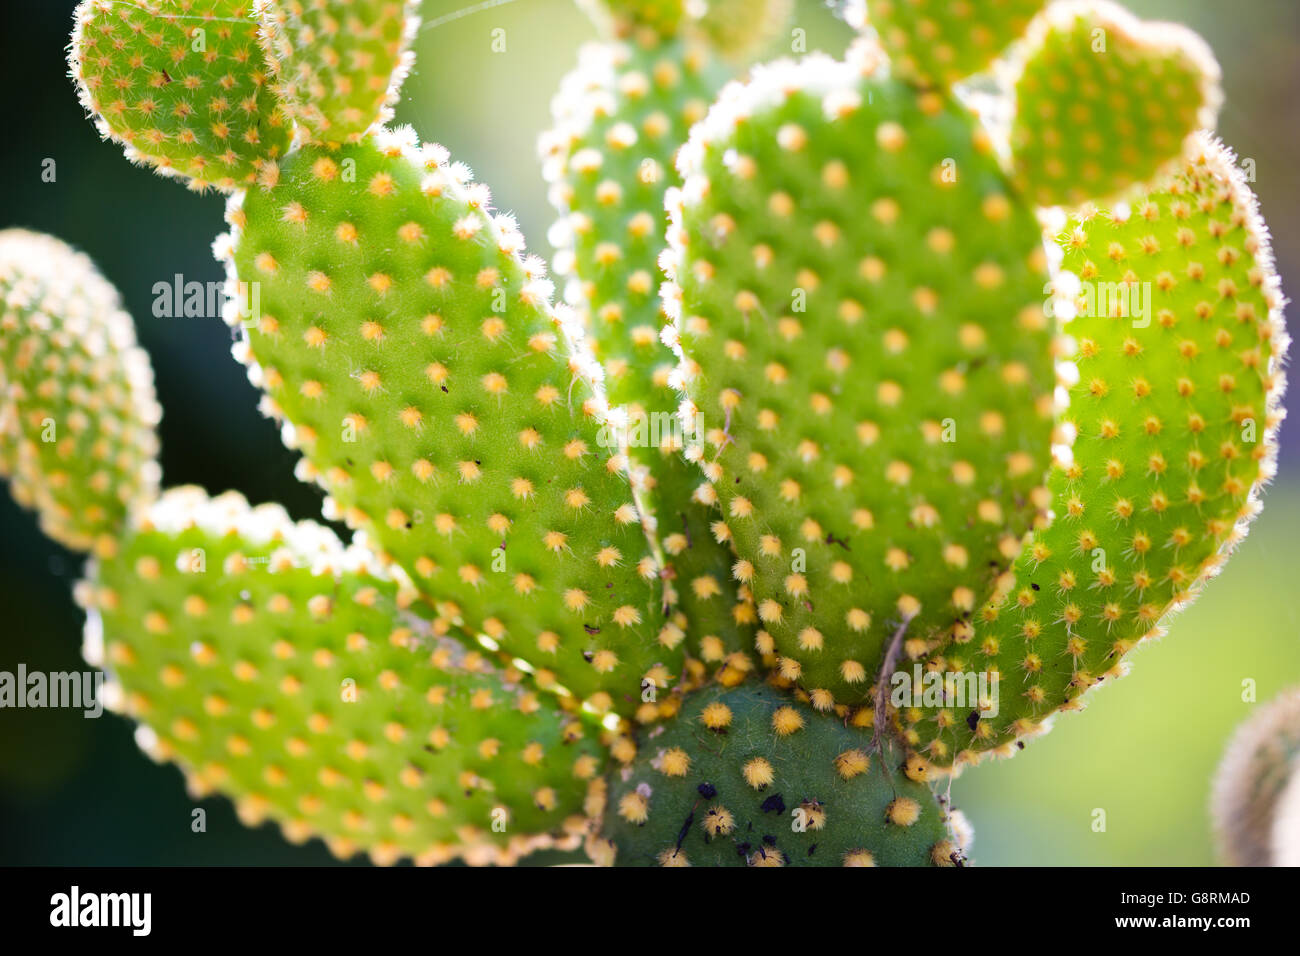 macro detail of Quills prickly cactus spines - Stock Image